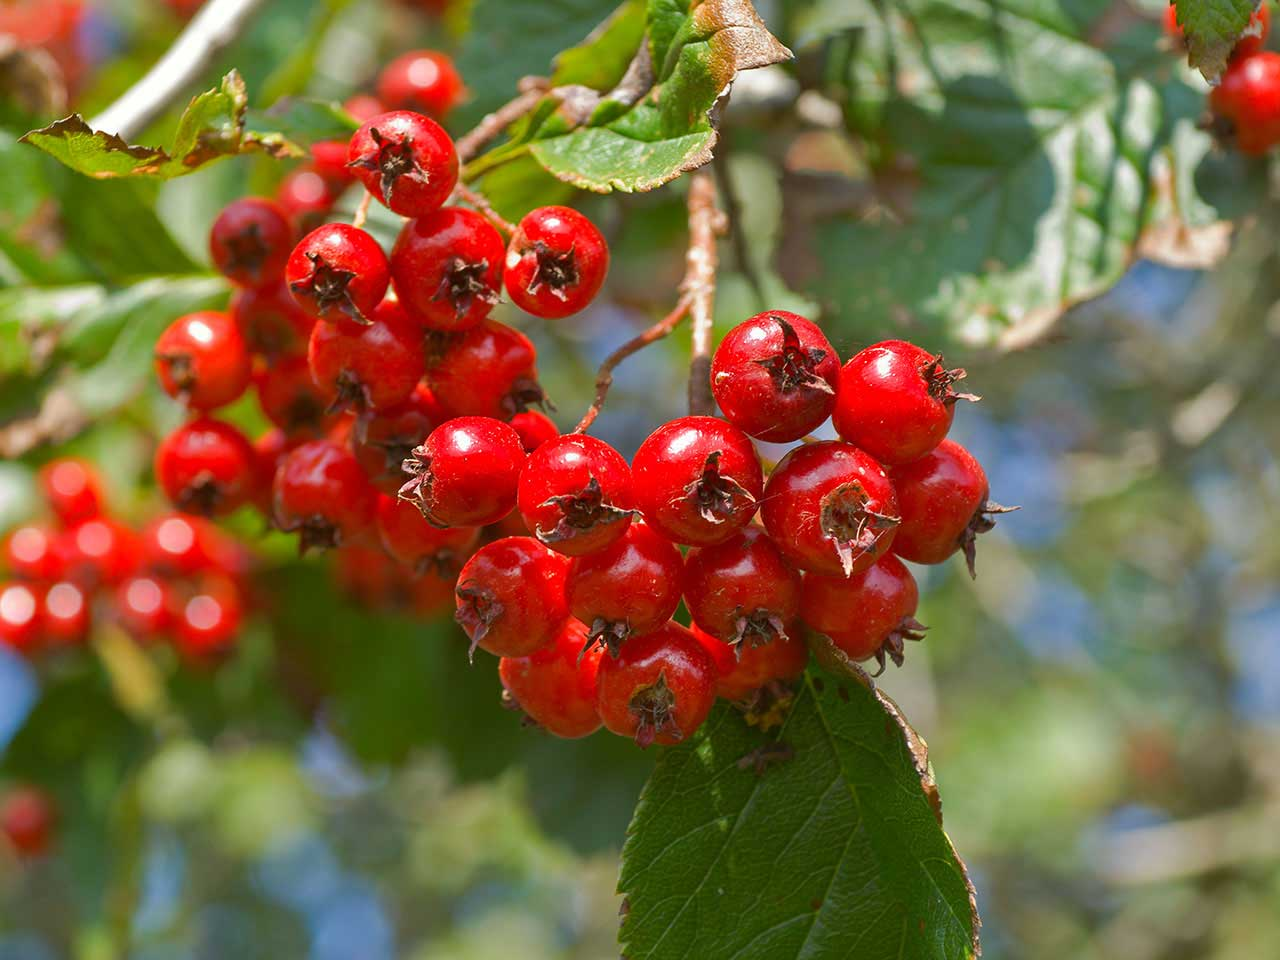 Ornamental hawthorn tree branch with red fruits